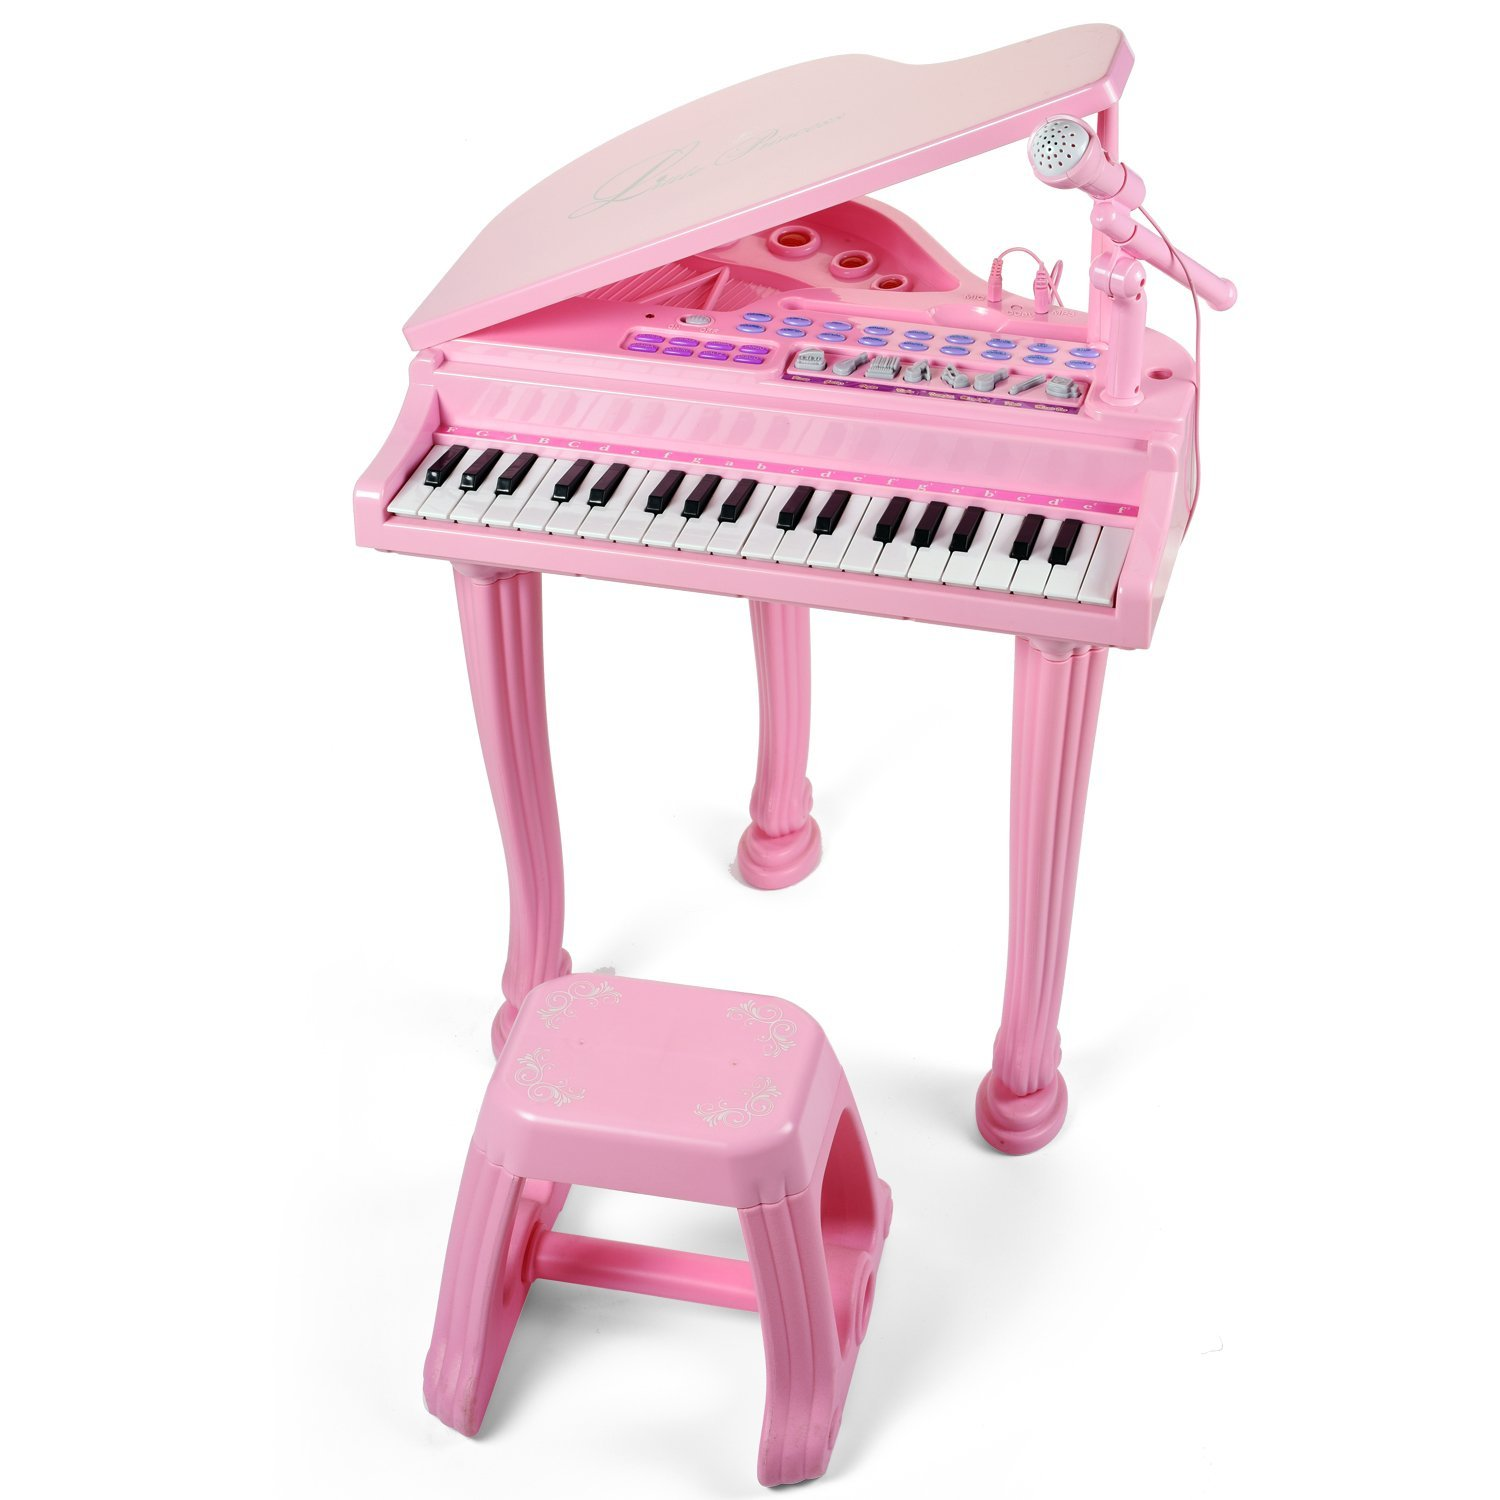 Little Princess Educational 37 Keys Keyboard Kids Toy Piano with Bench and Microphone can Connect MP3 Mobile Phone for Toddlers